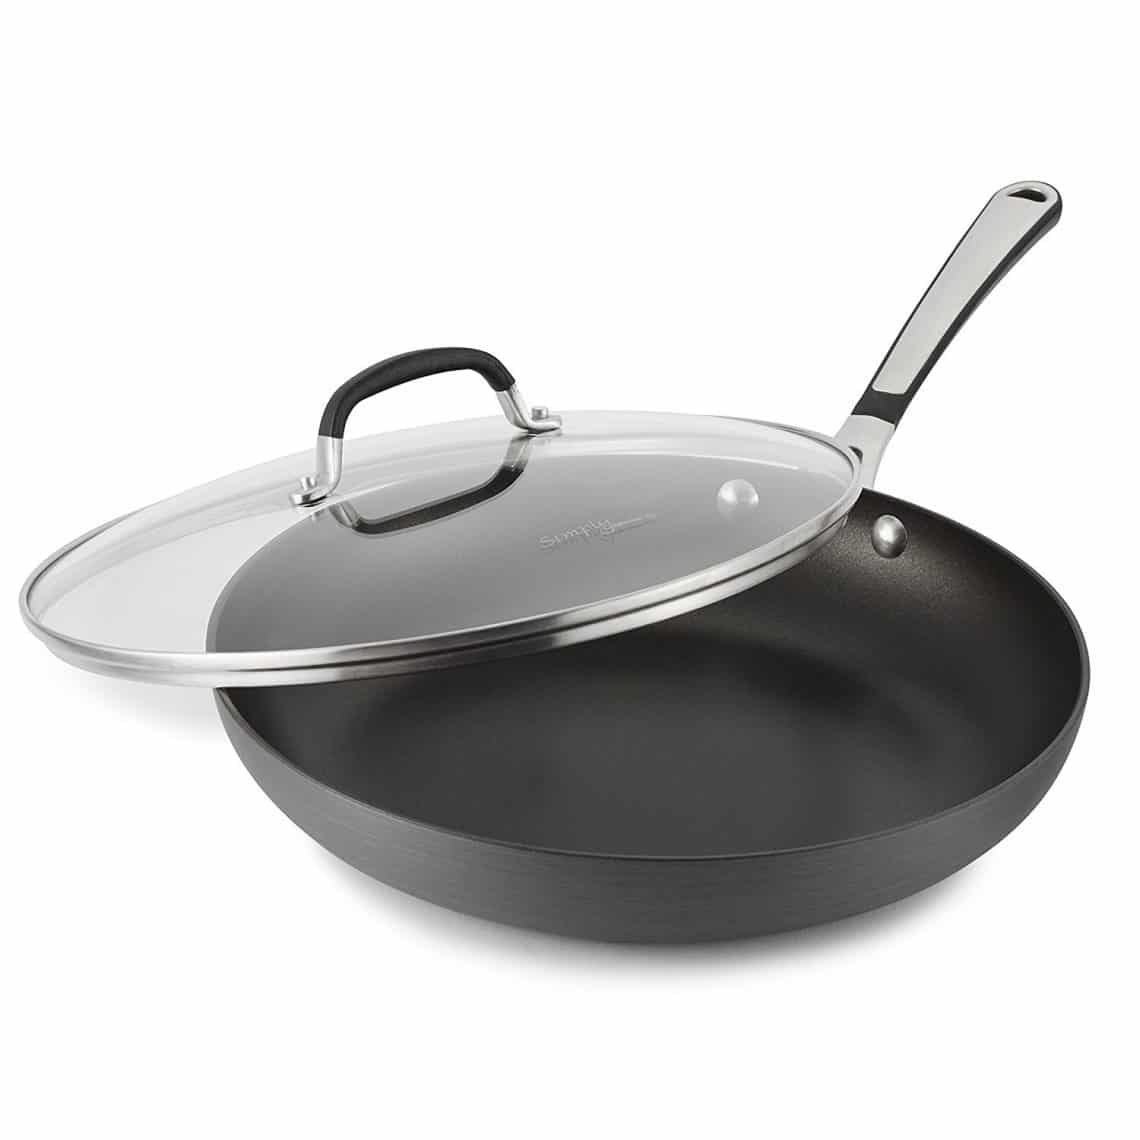 Simply Calphalon 12 inch Omelette Pan